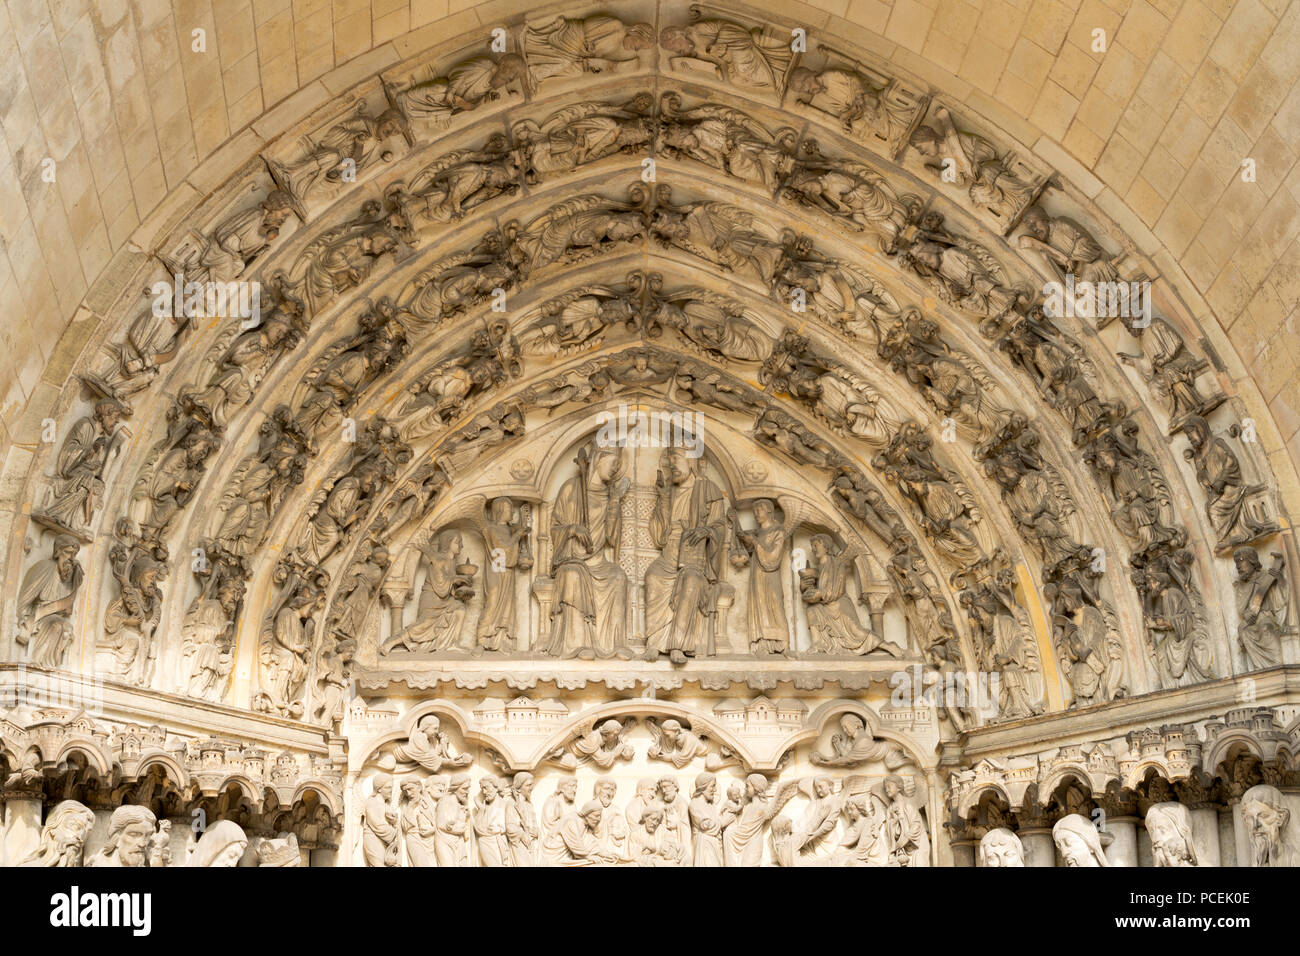 the tympanum over the central portal of laon cathedral france